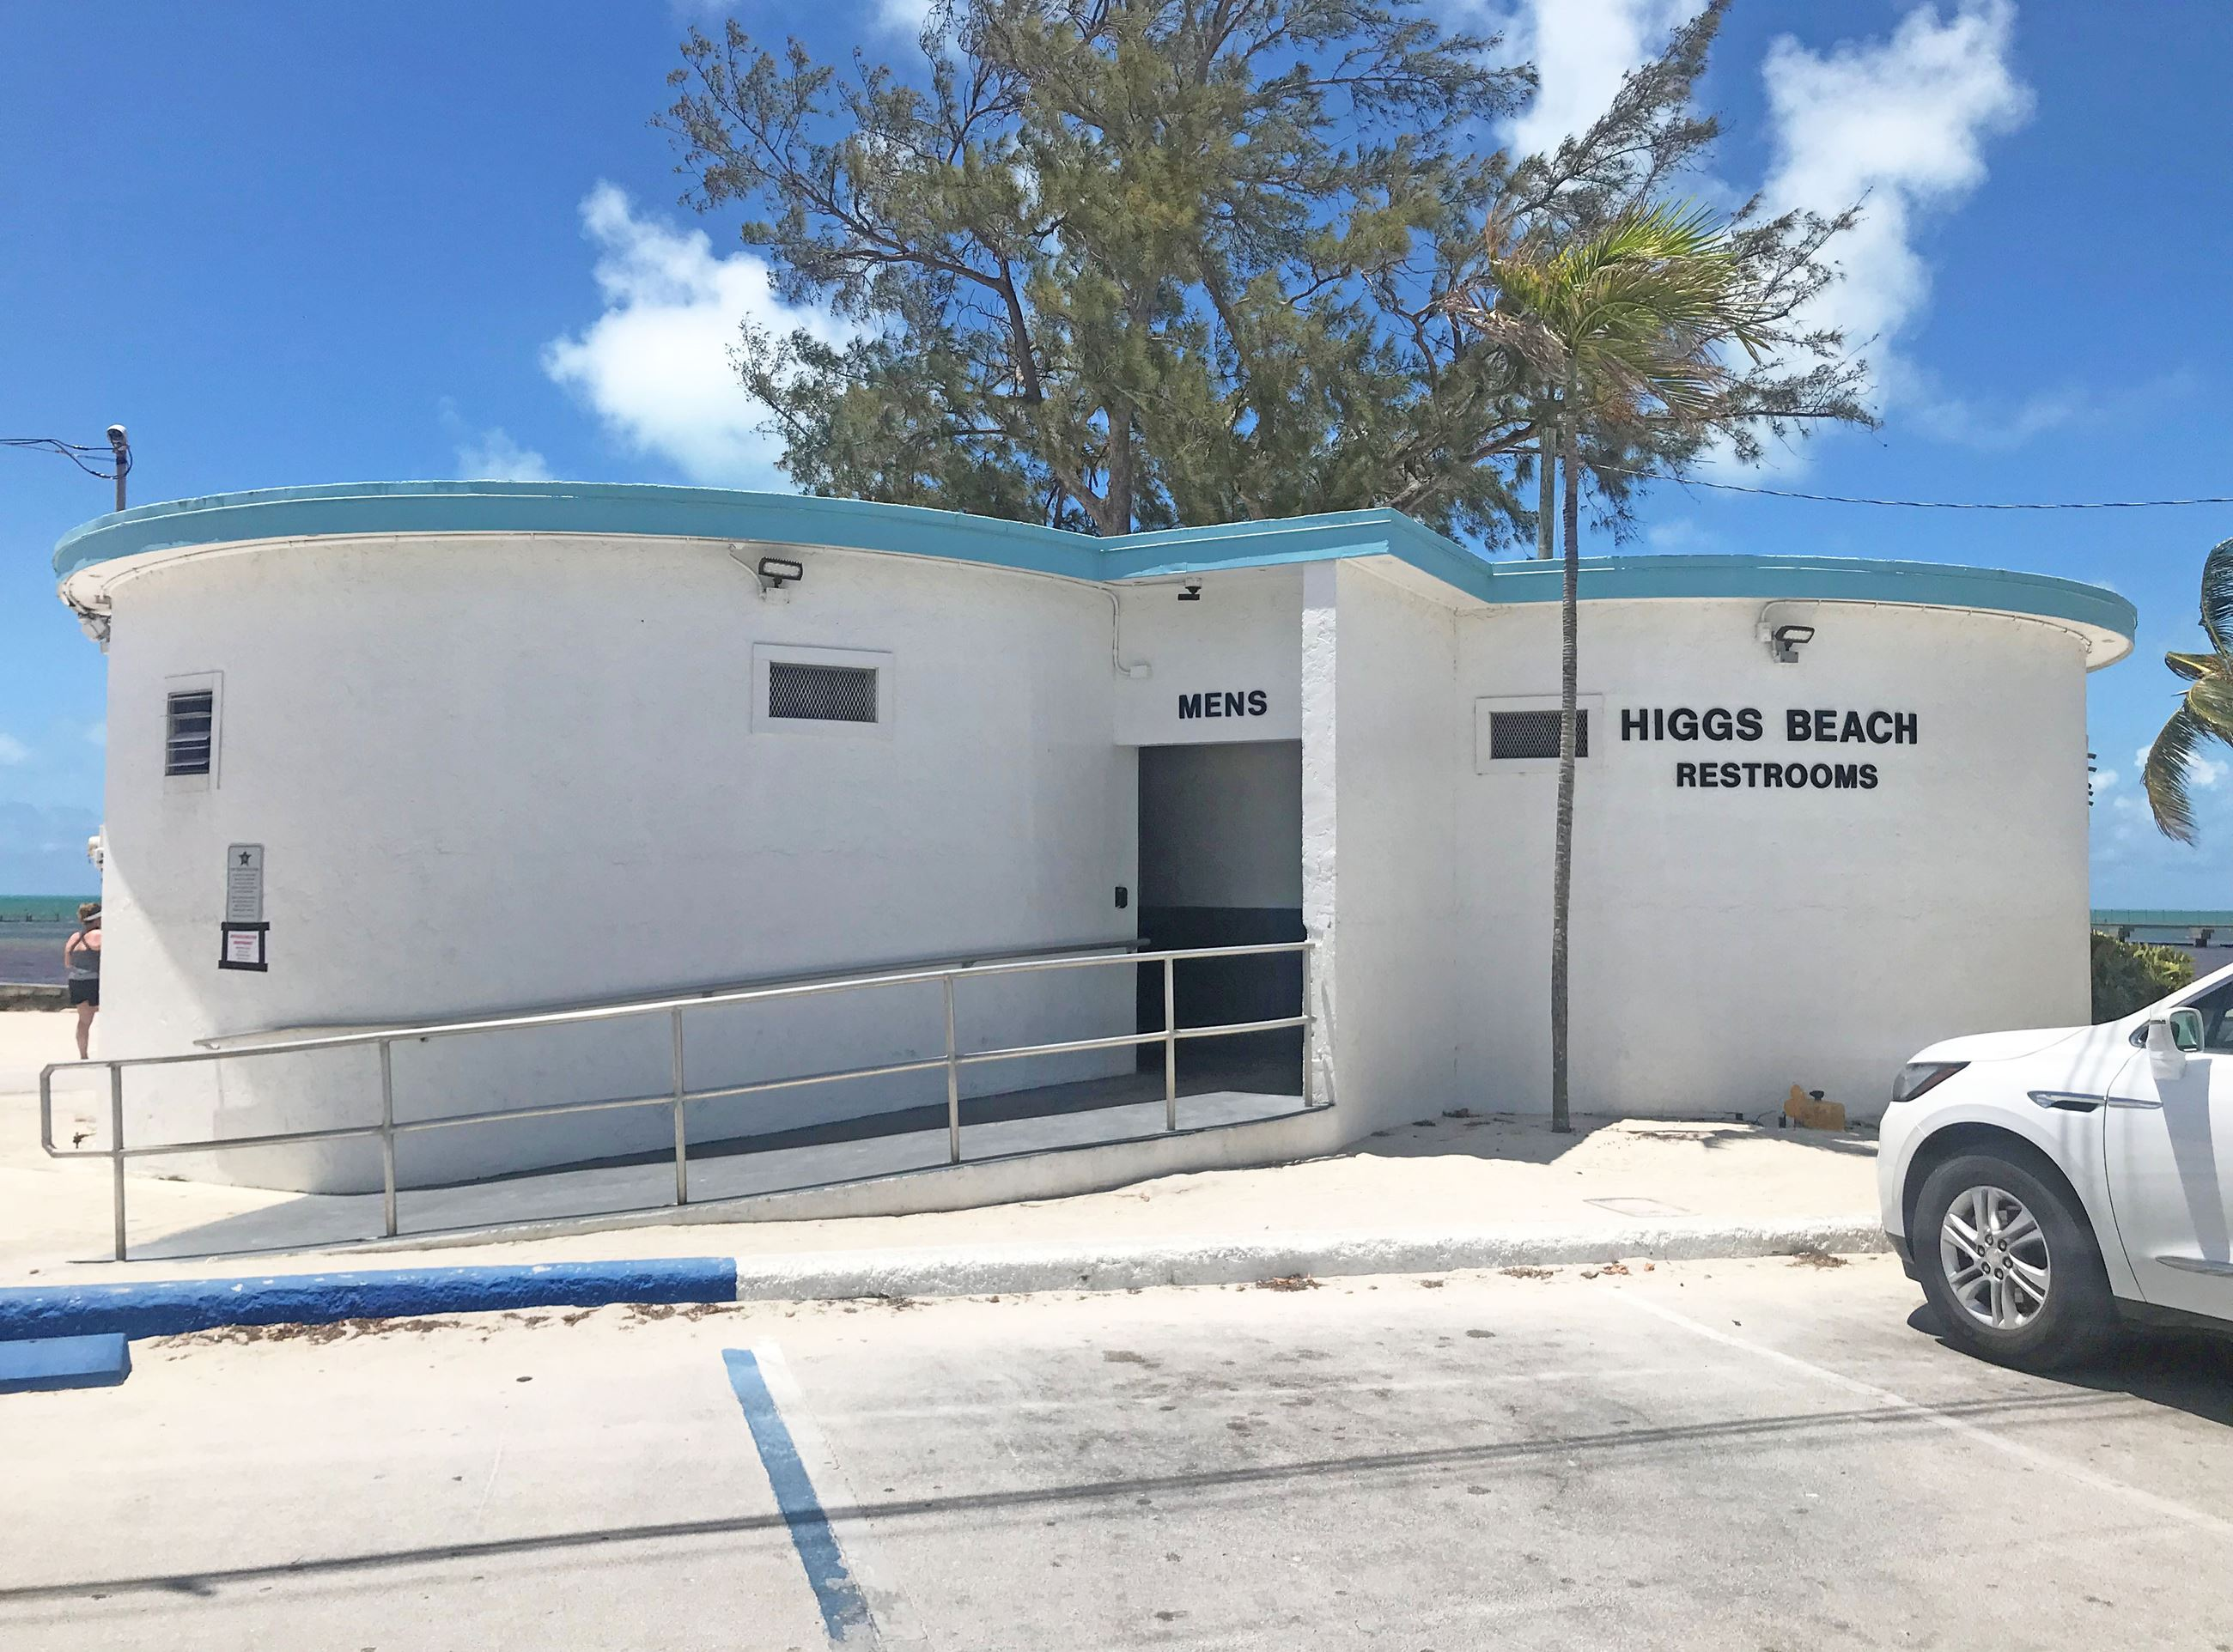 Higgs Beach restroom restoration to begin